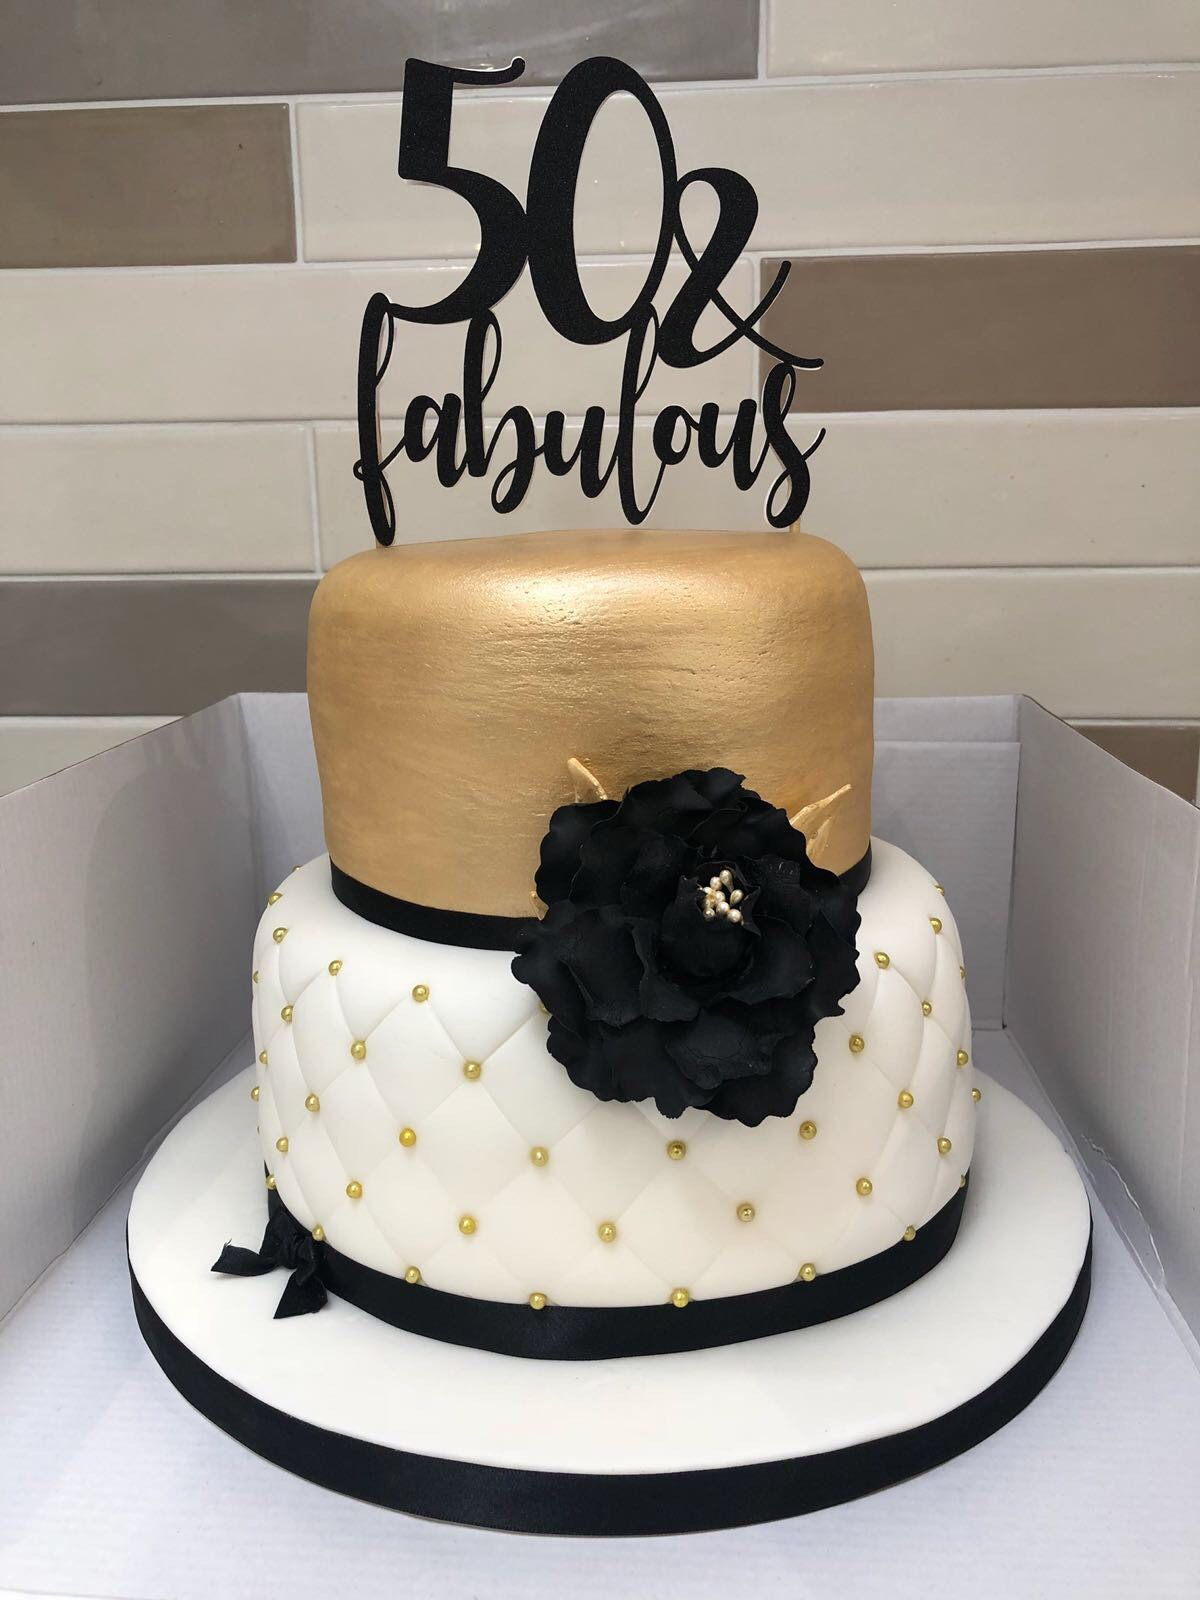 50 & Fabulous Cake Topper, 50 and Fabulous, 50th Birthday Party Decor, 50th Birthday Cake Topper, 50th Cake Decoration #moms50thbirthday